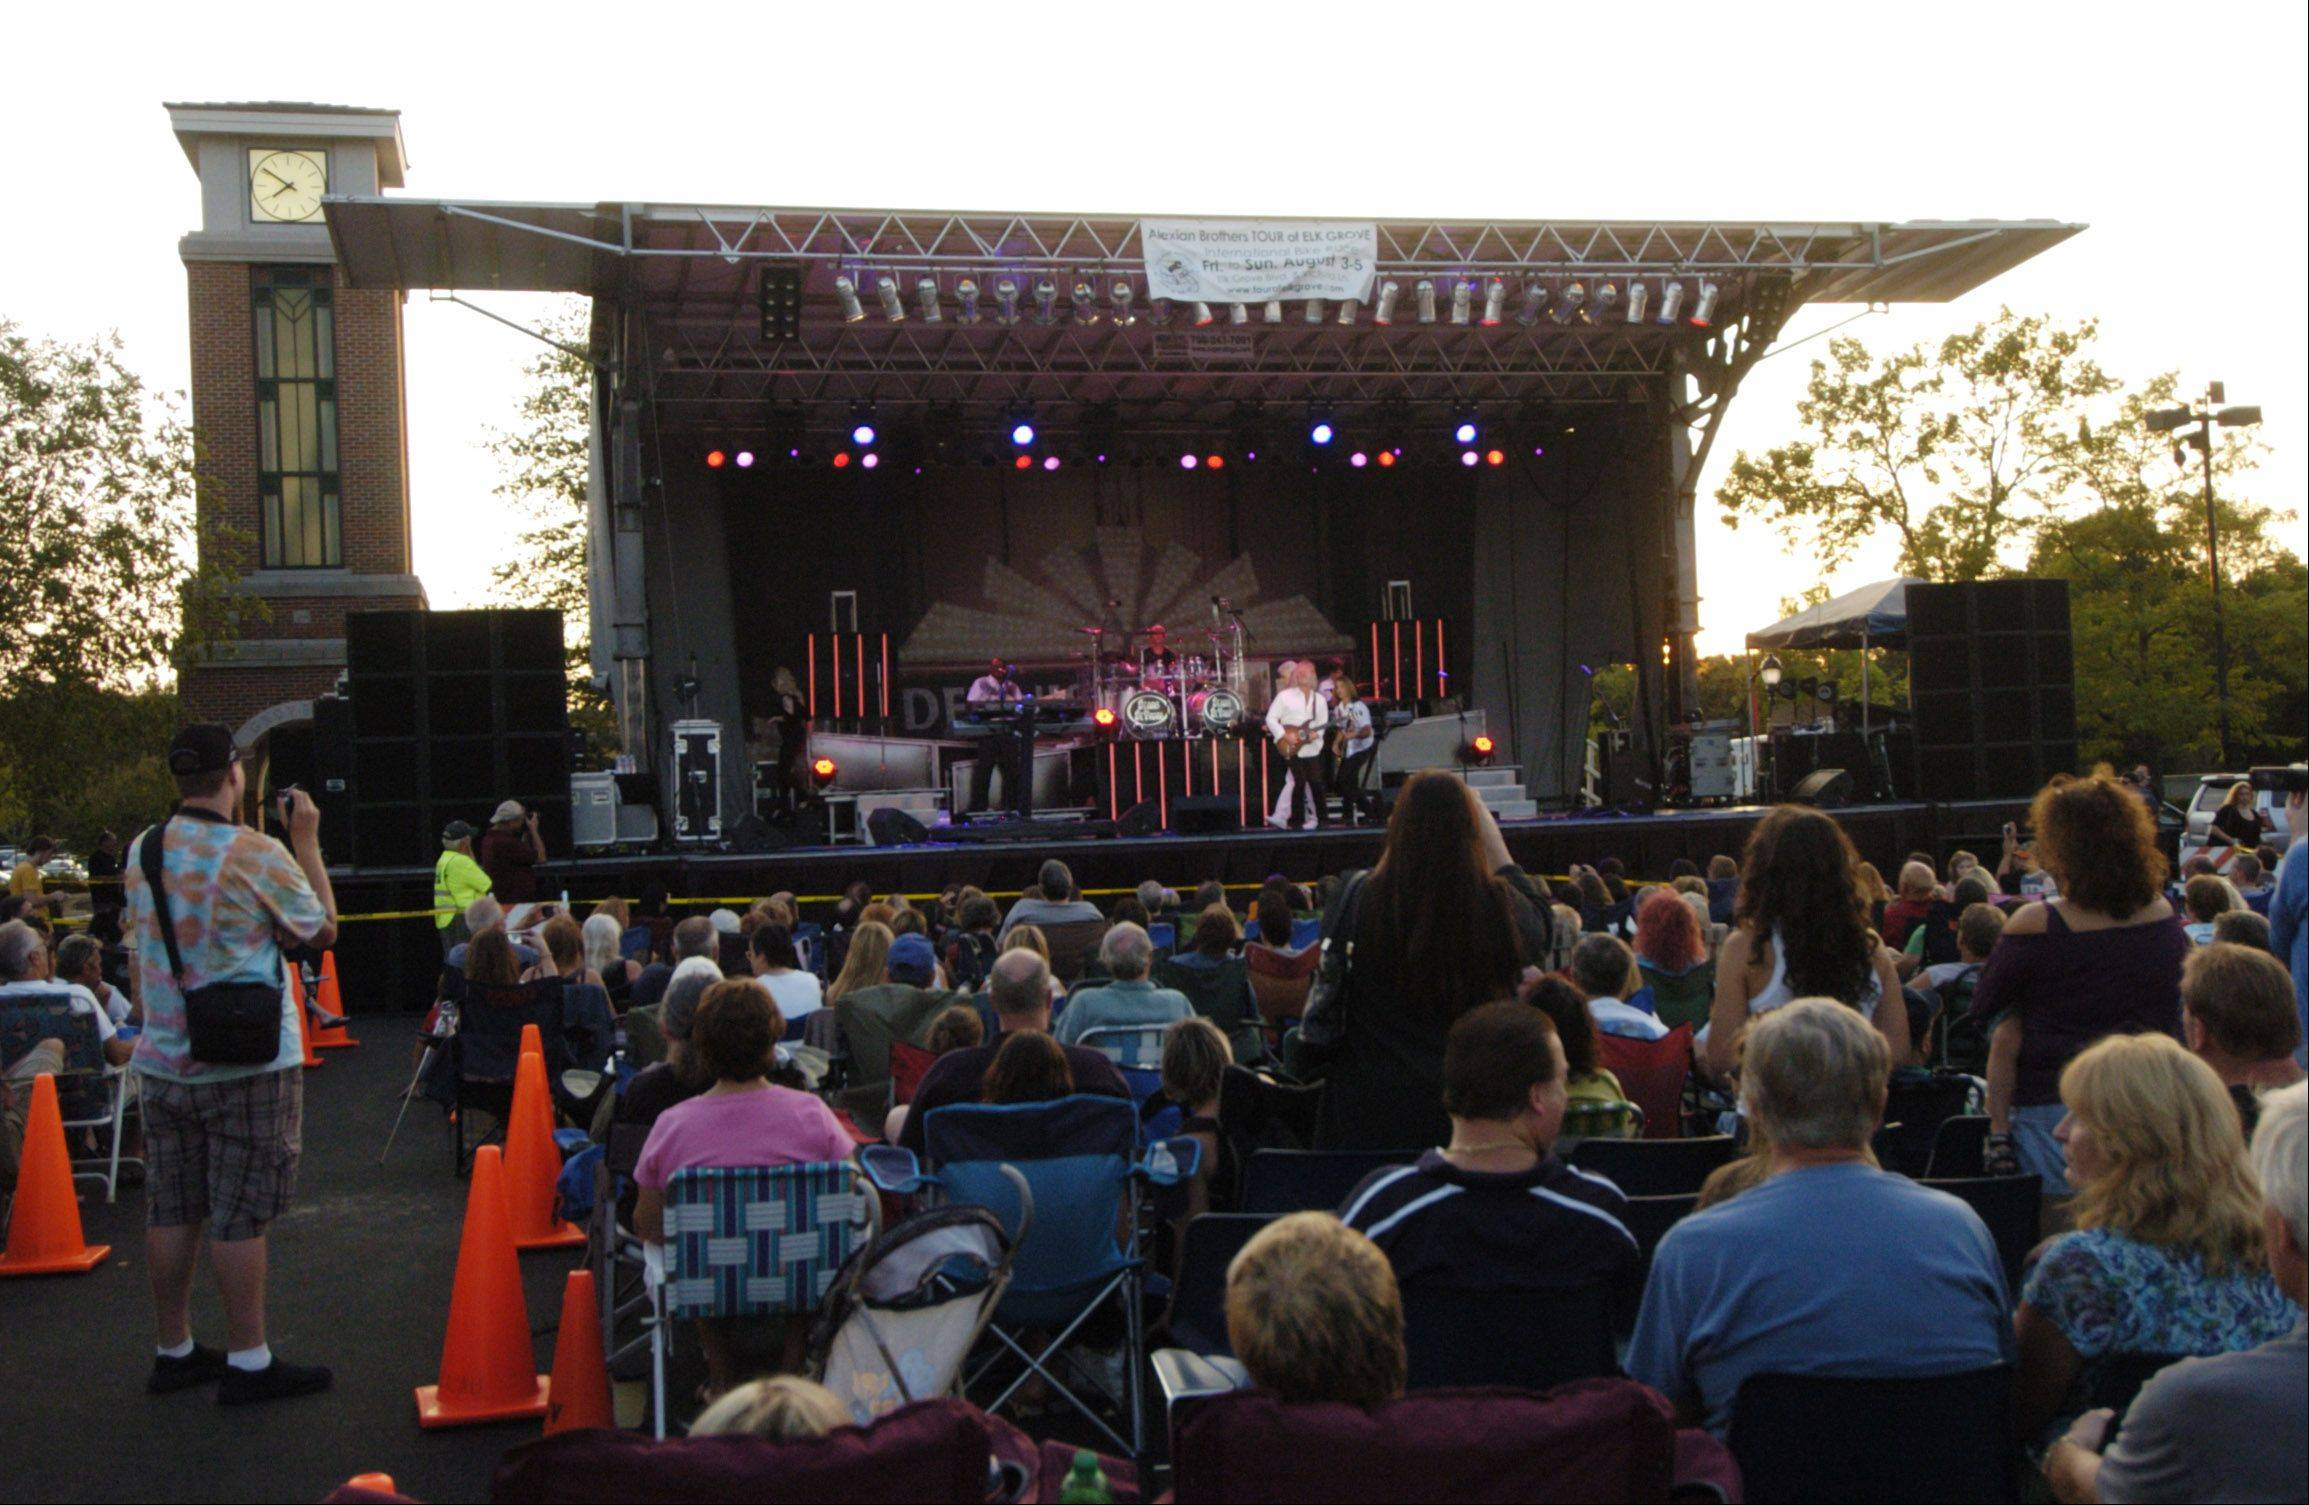 Elk Grove Village is paying Entertainment Management Group $310,000 to manage and operate its 2014 summer concert series, which will feature five concerts over the course of five consecutive Tuesdays.